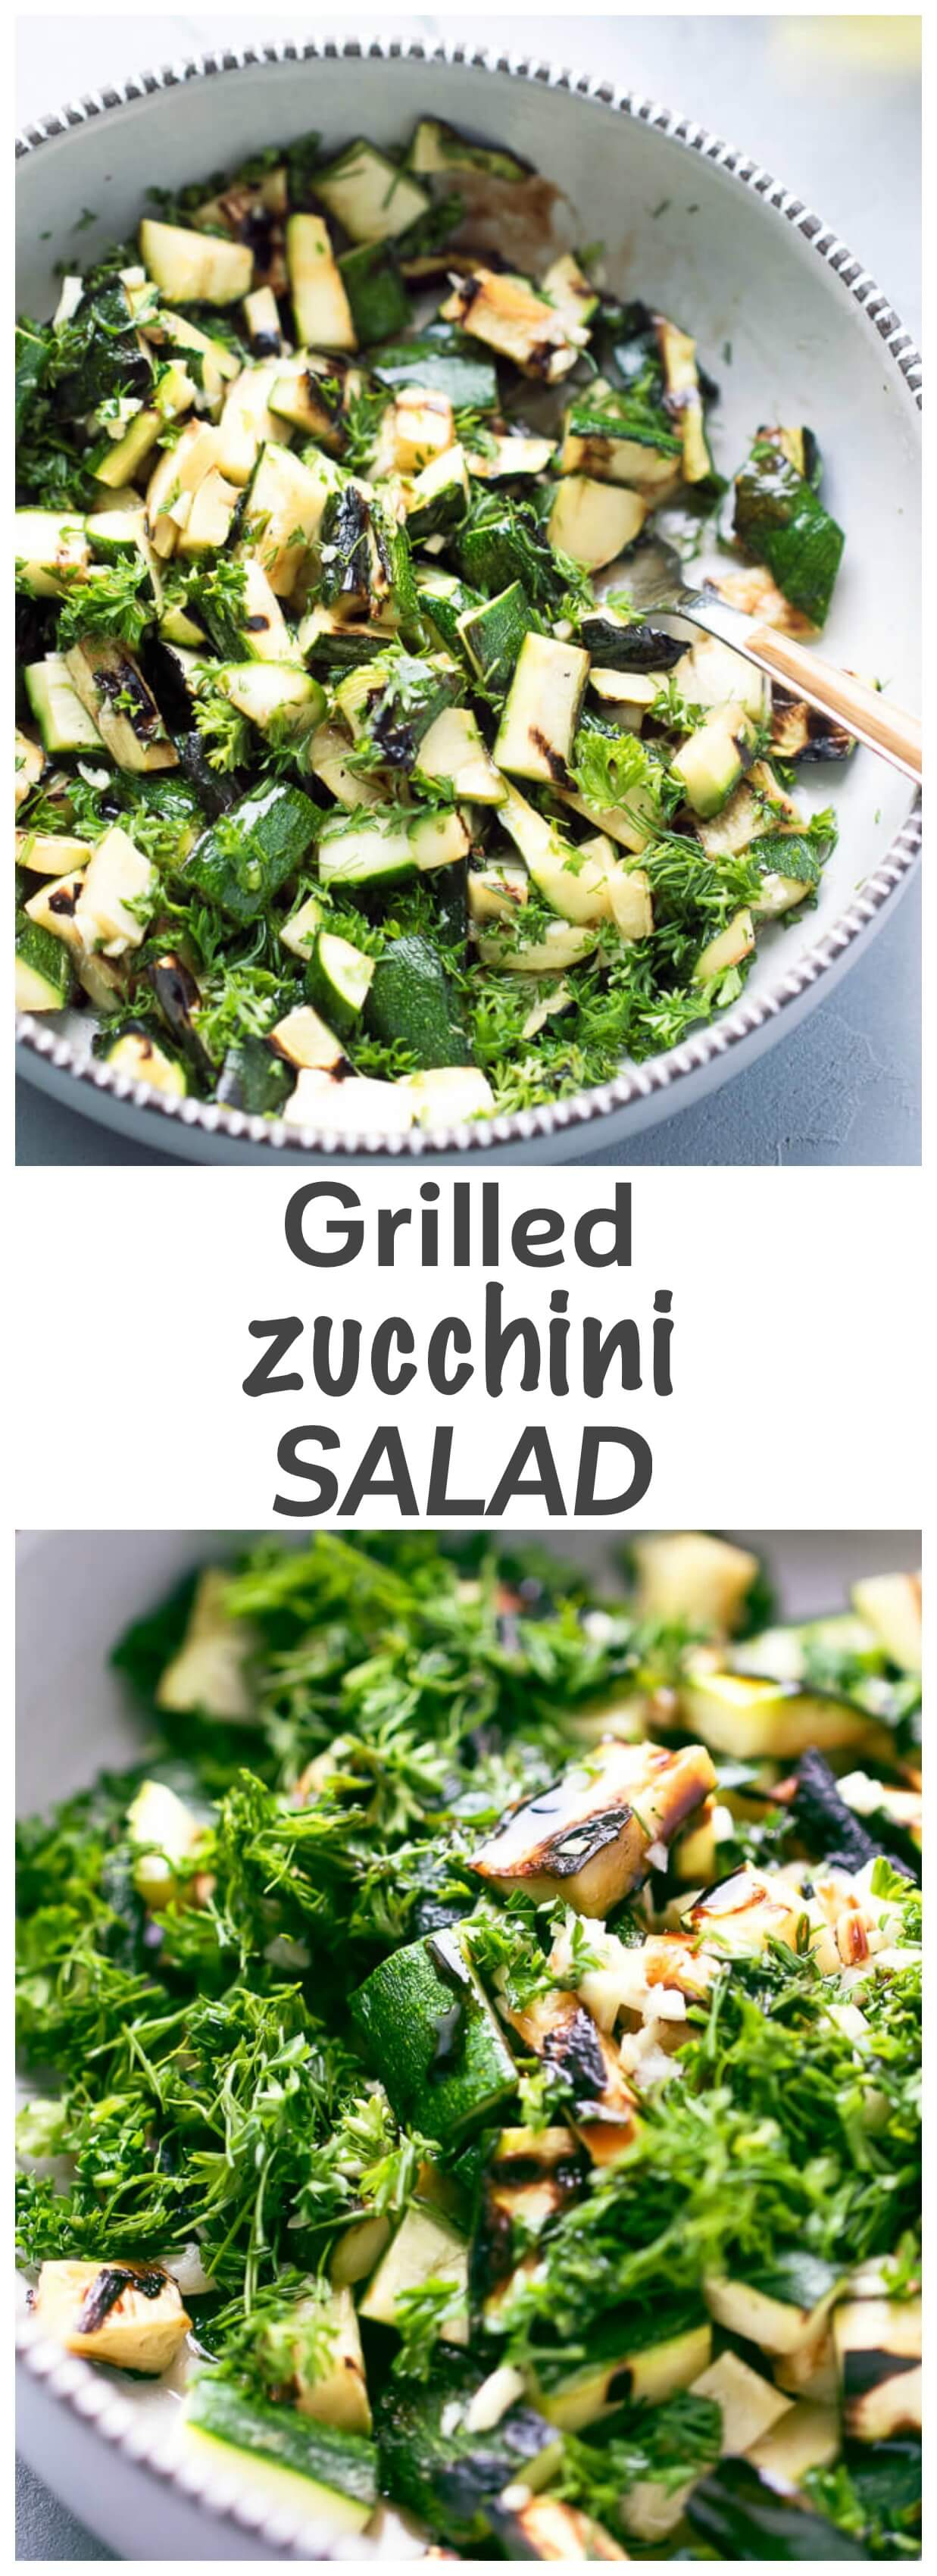 Grilled Zucchini Salad Recipe- zucchini sliced lengthwise, lightly charred, but still crunchy, chopped and served with simple, tangy and fresh dressing made of olive oil, vinegar, balsamic, salt, parsley and fresh dill.